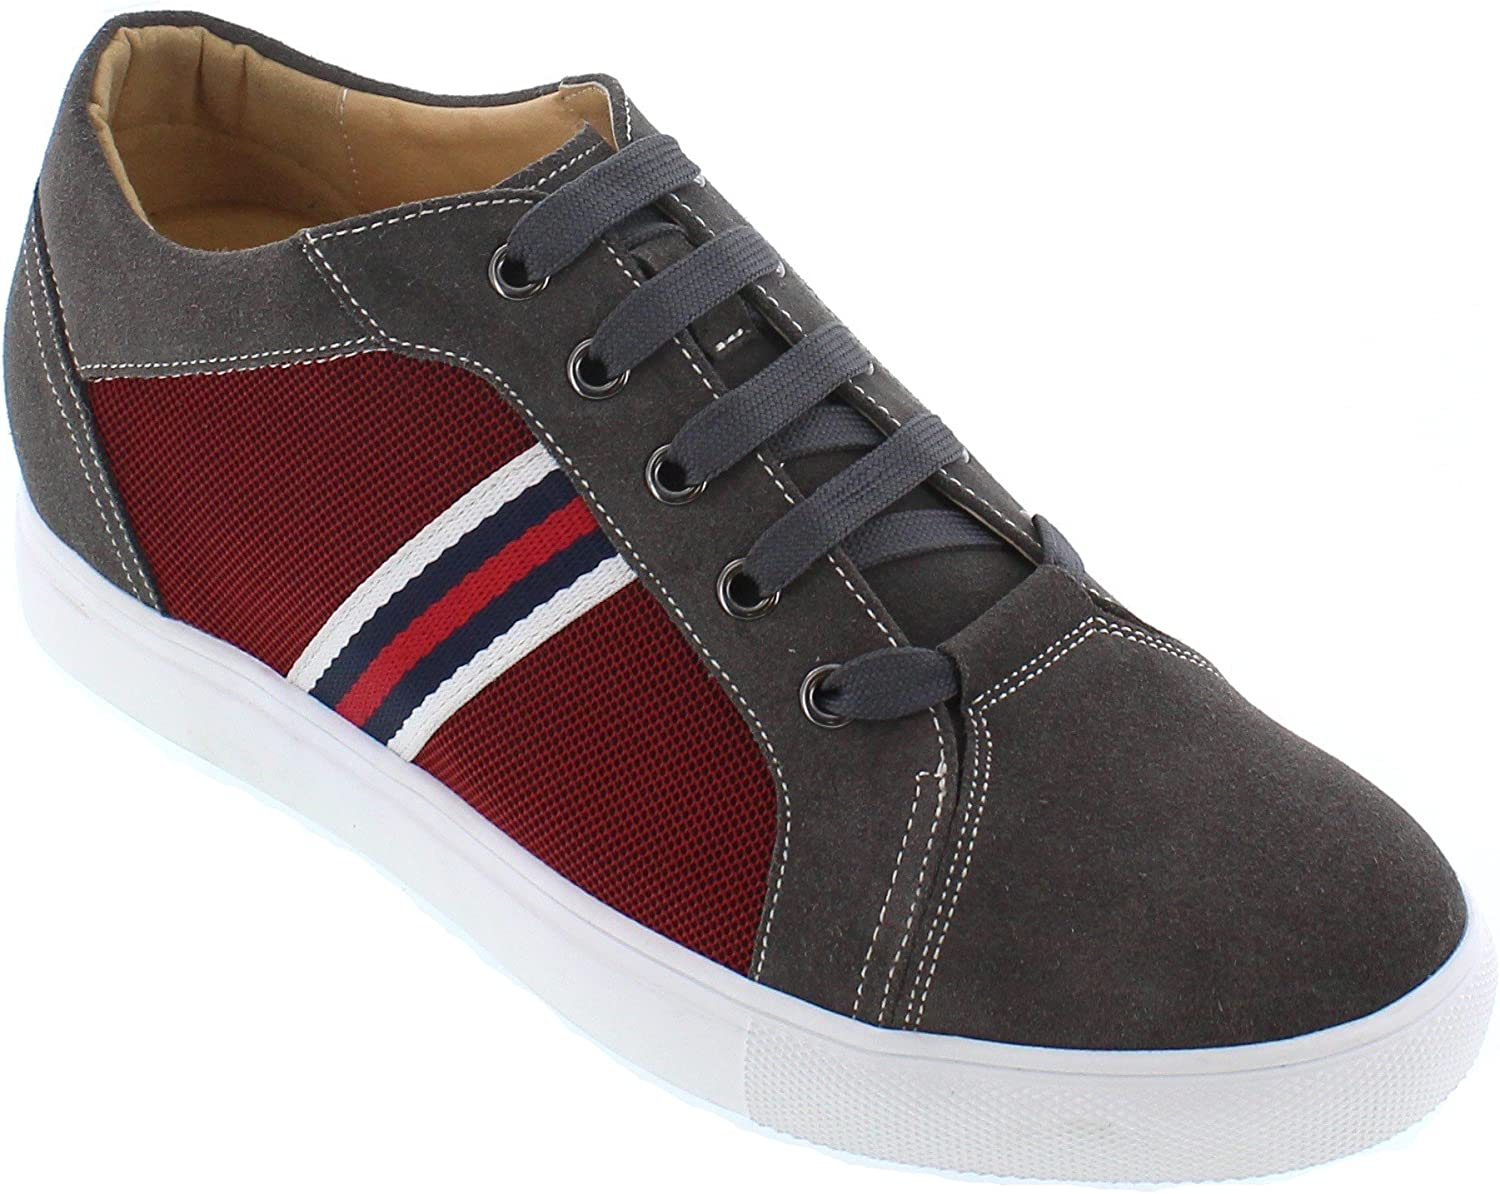 CALTO - J9102-2.4 Inches Taller - Height Increasing Elevator shoes - Grey & Metallic Red Lace-up Fashion Sneakers